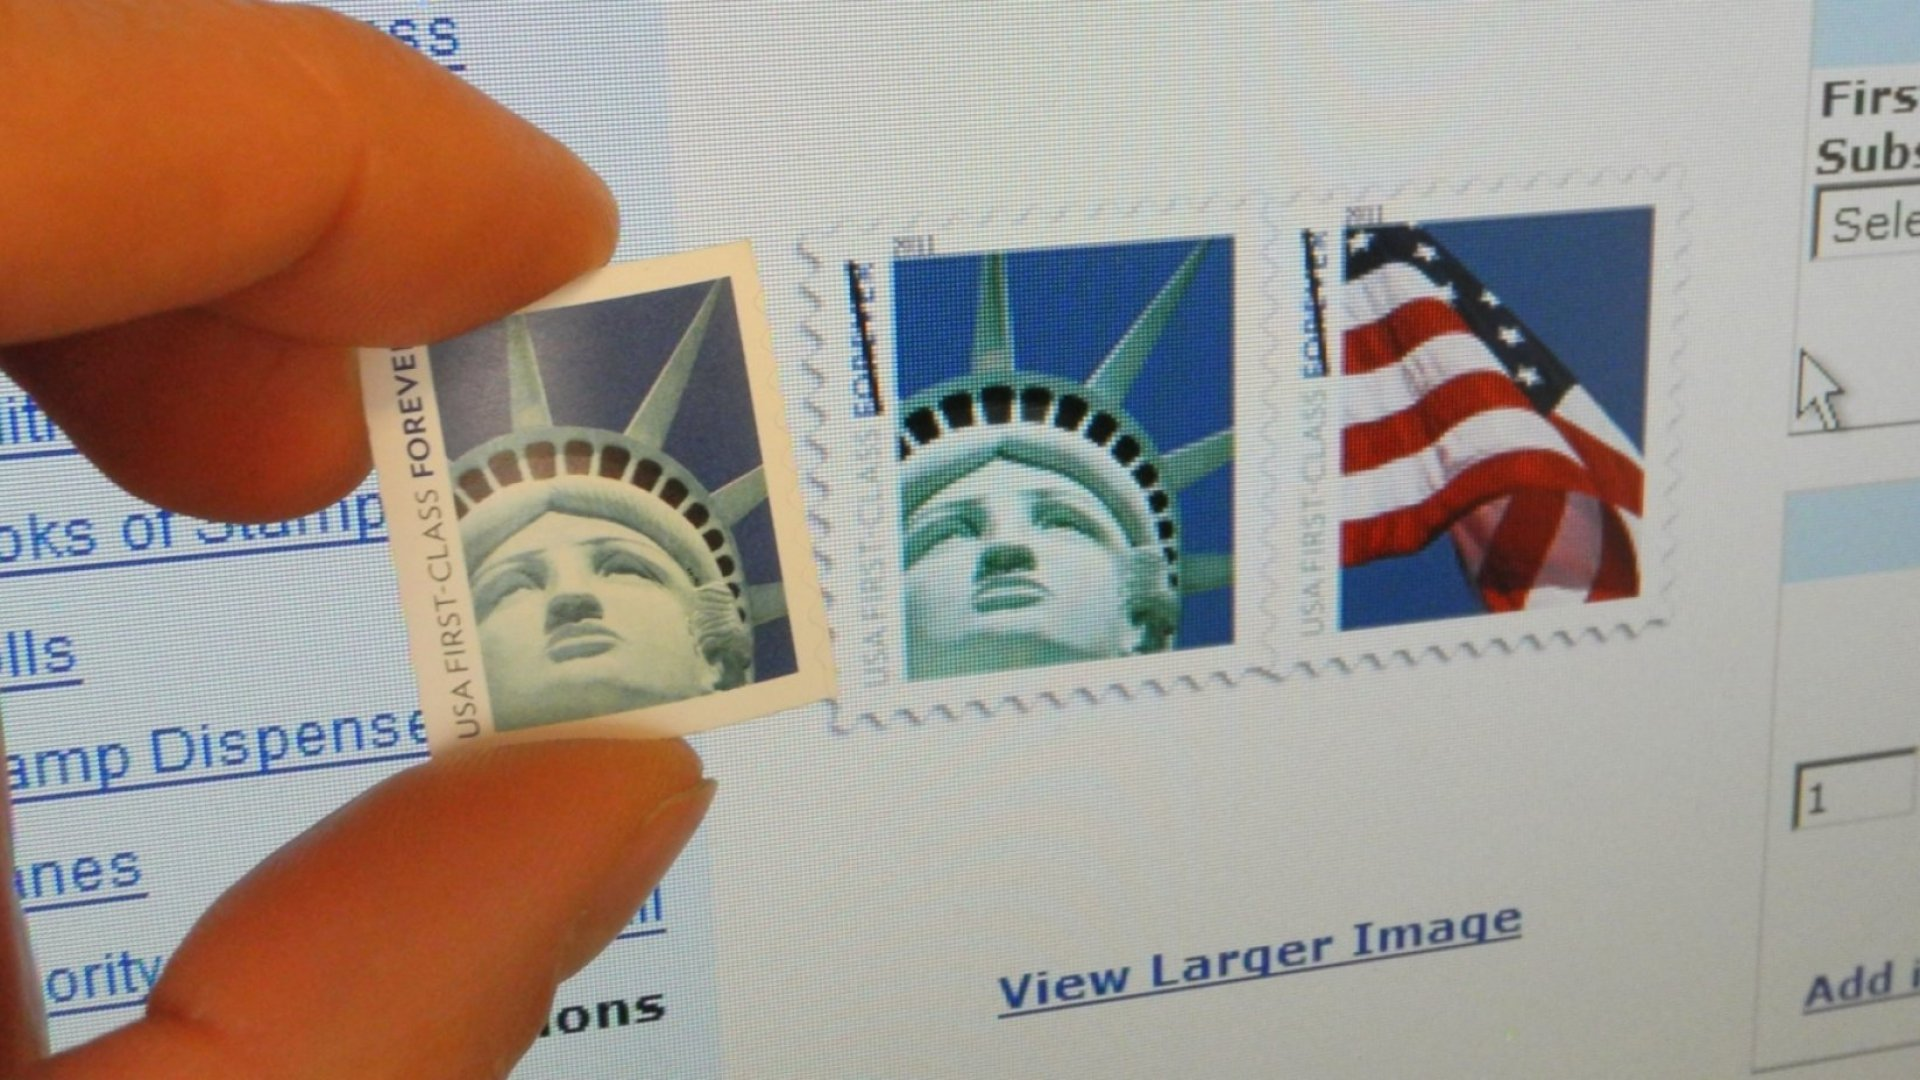 The U.S. Post Office Violated an Artist's Copyright on Billions of Stamps. Now a Court Says It Owes Millions